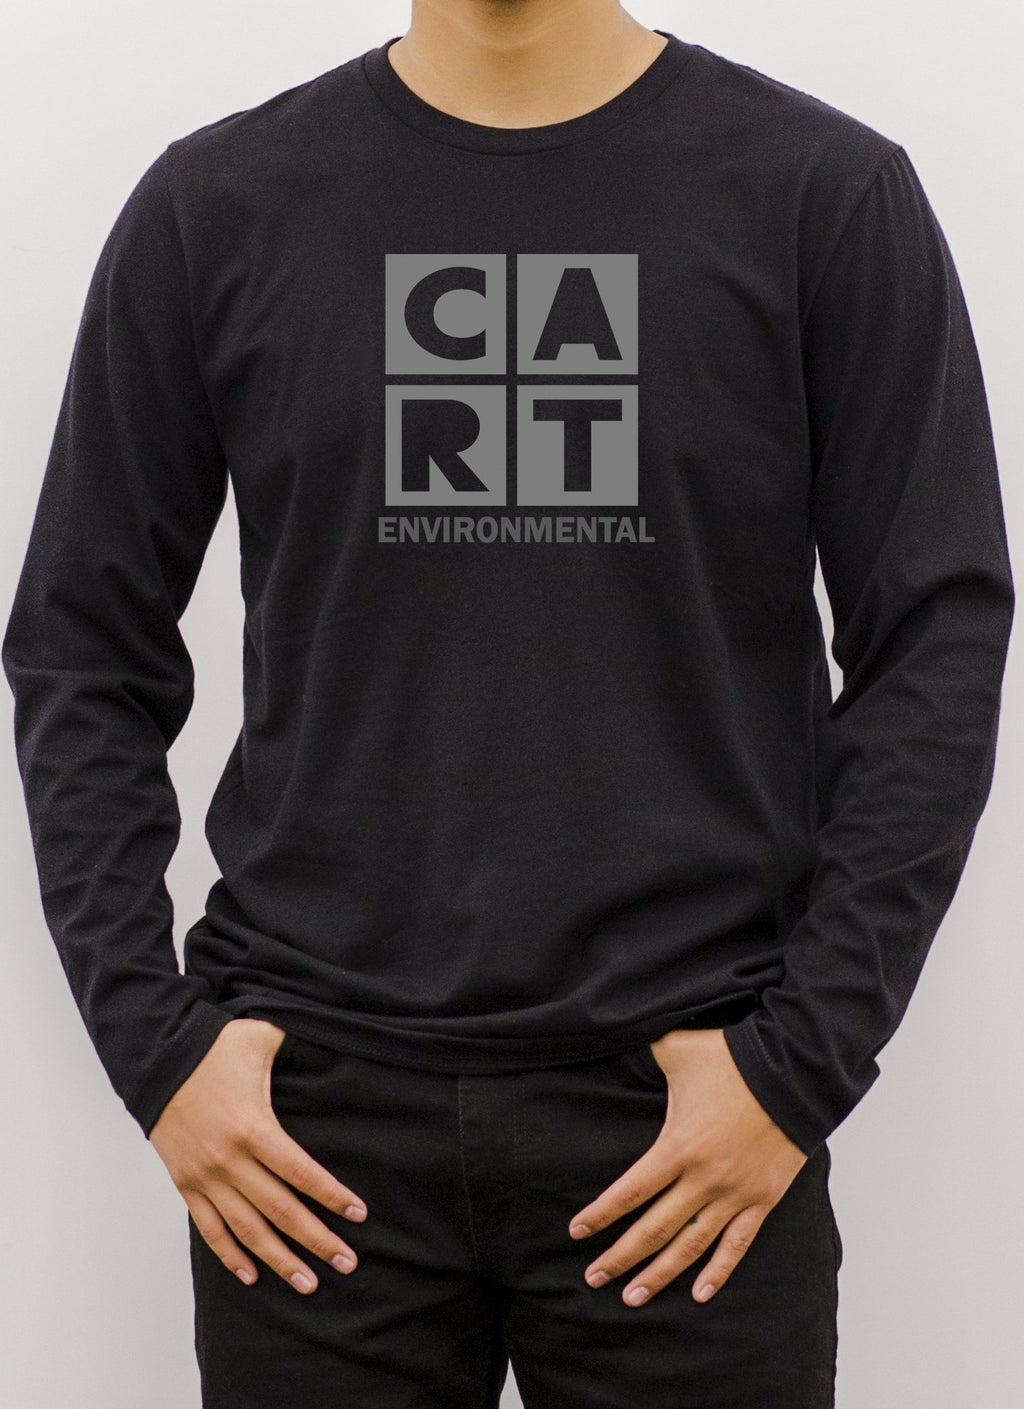 NEW Long Sleeve T-Shirt - Environmental